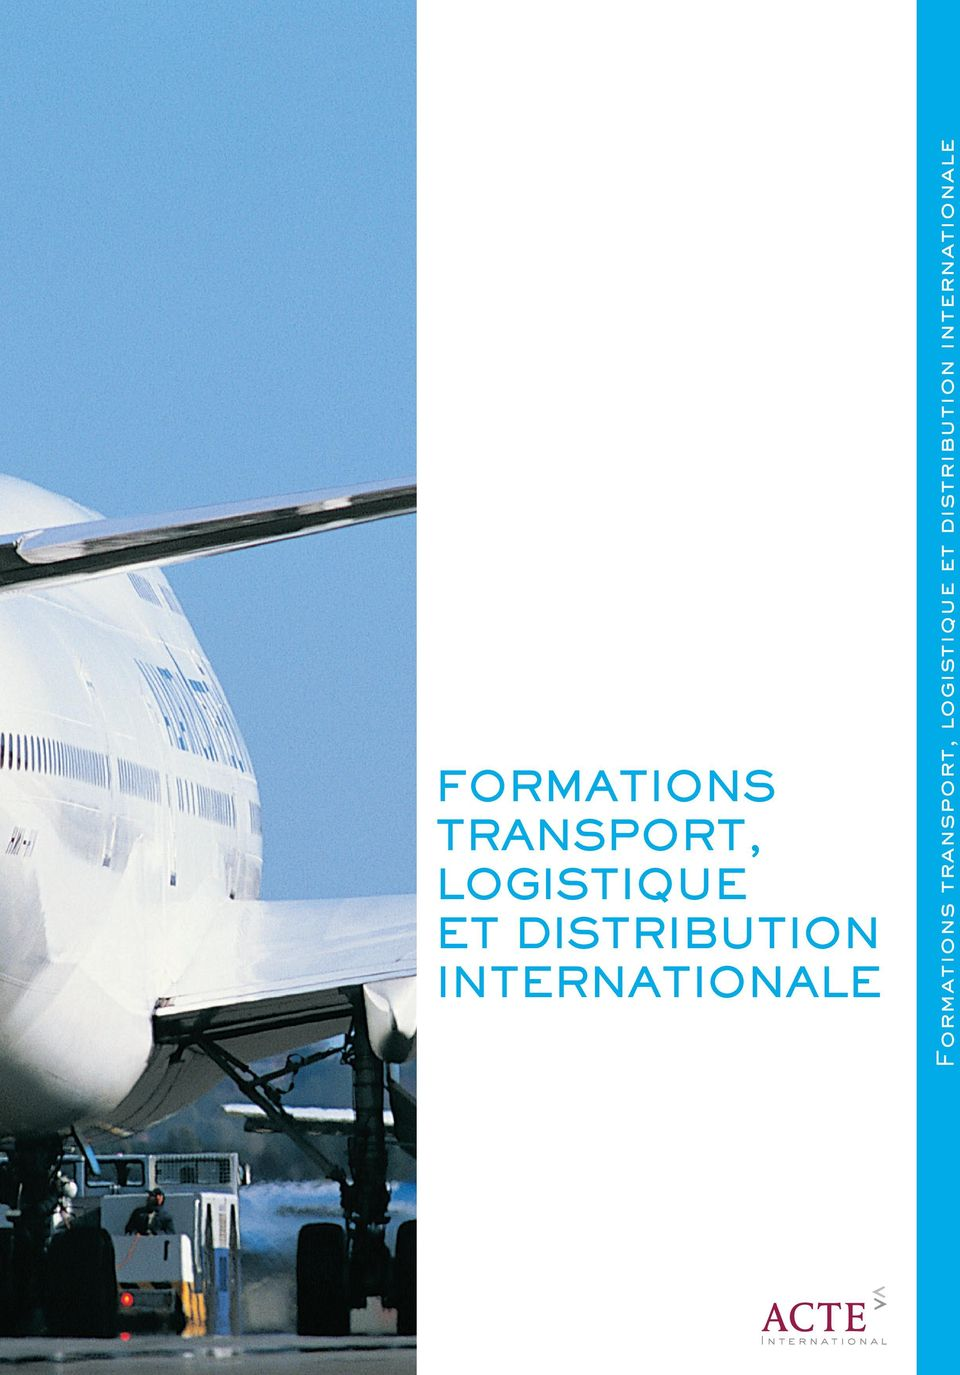 internationale FORMATIONS